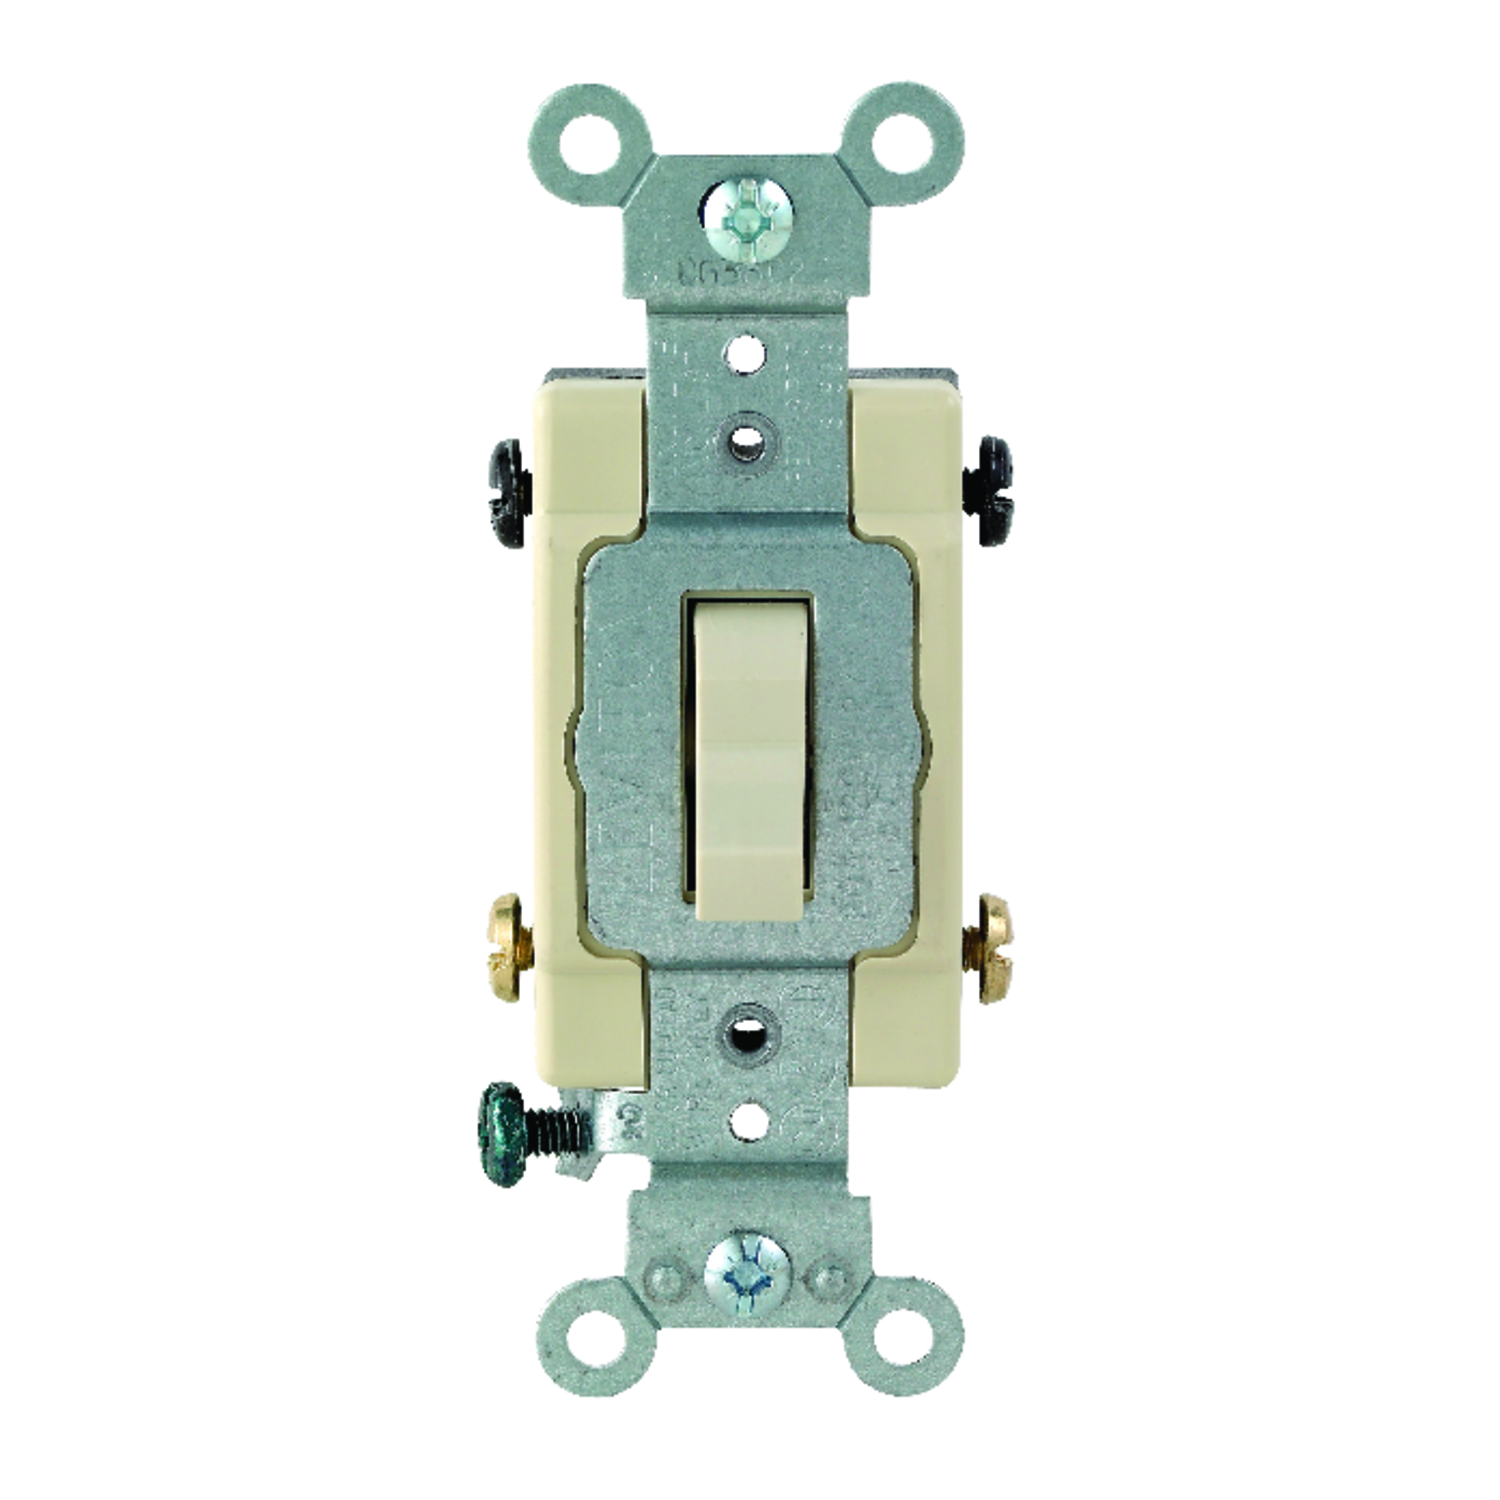 Leviton Commercial Toggle Ivory Switch 1 each 20 amps - Ace Hardware